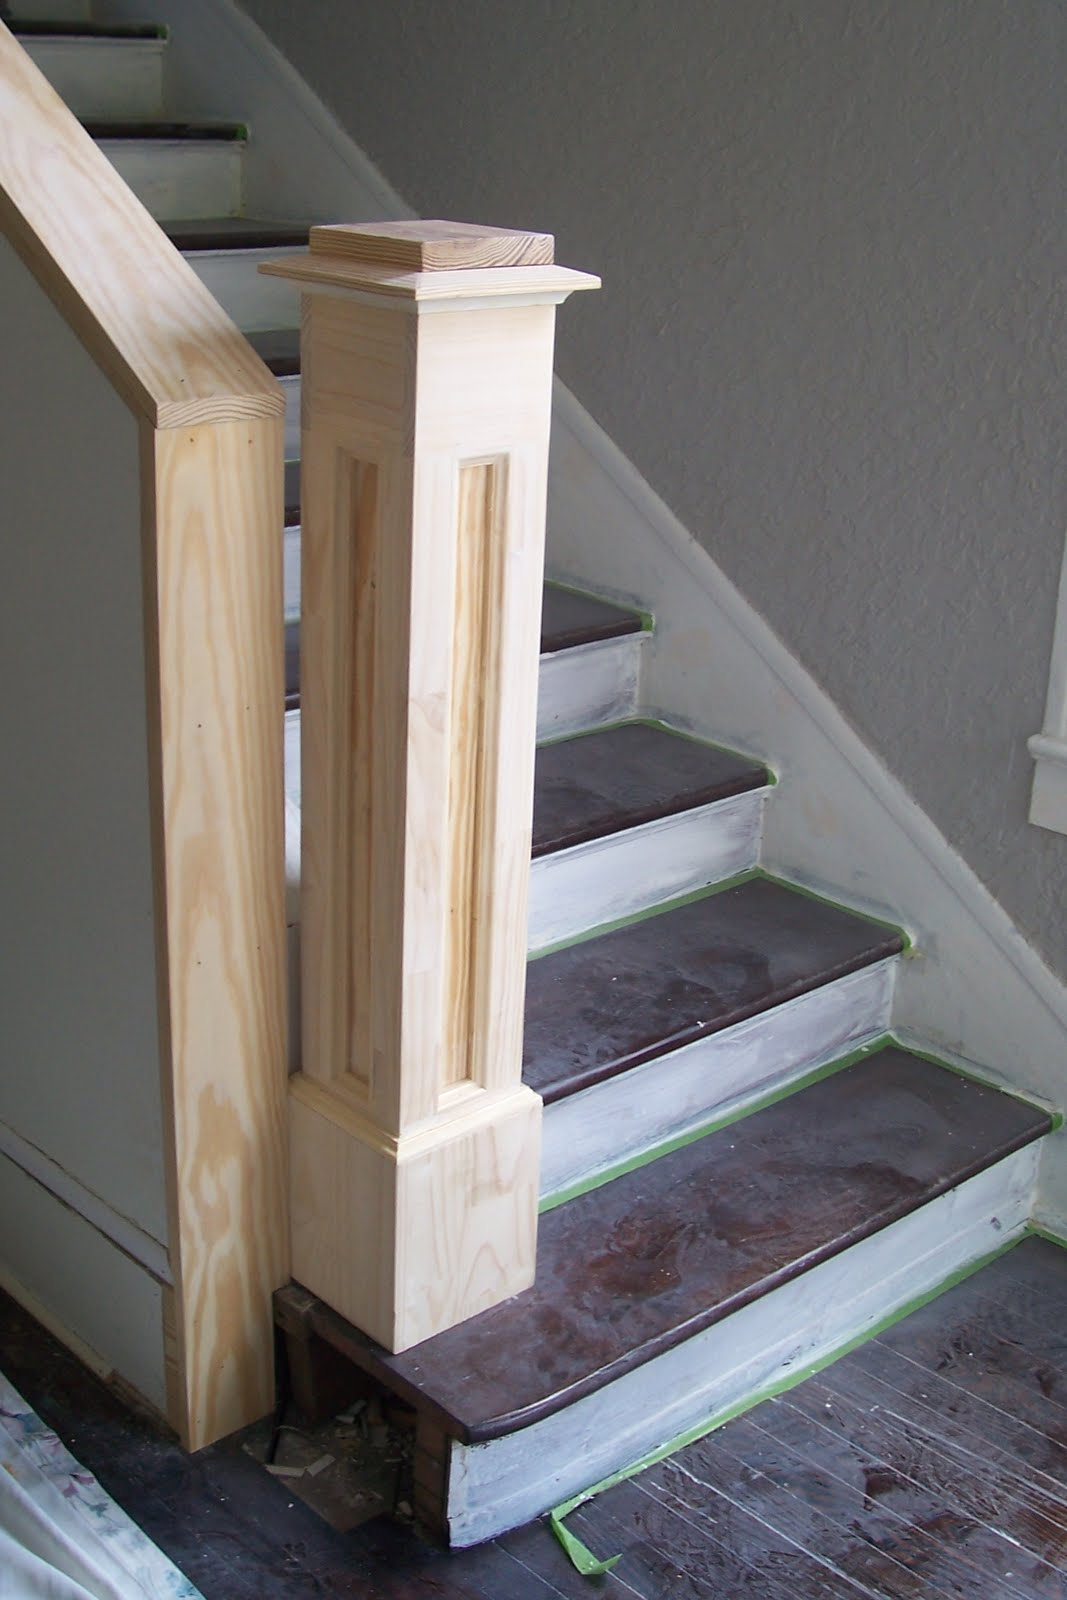 Build Newel Post Little Old House Its A Newel Post